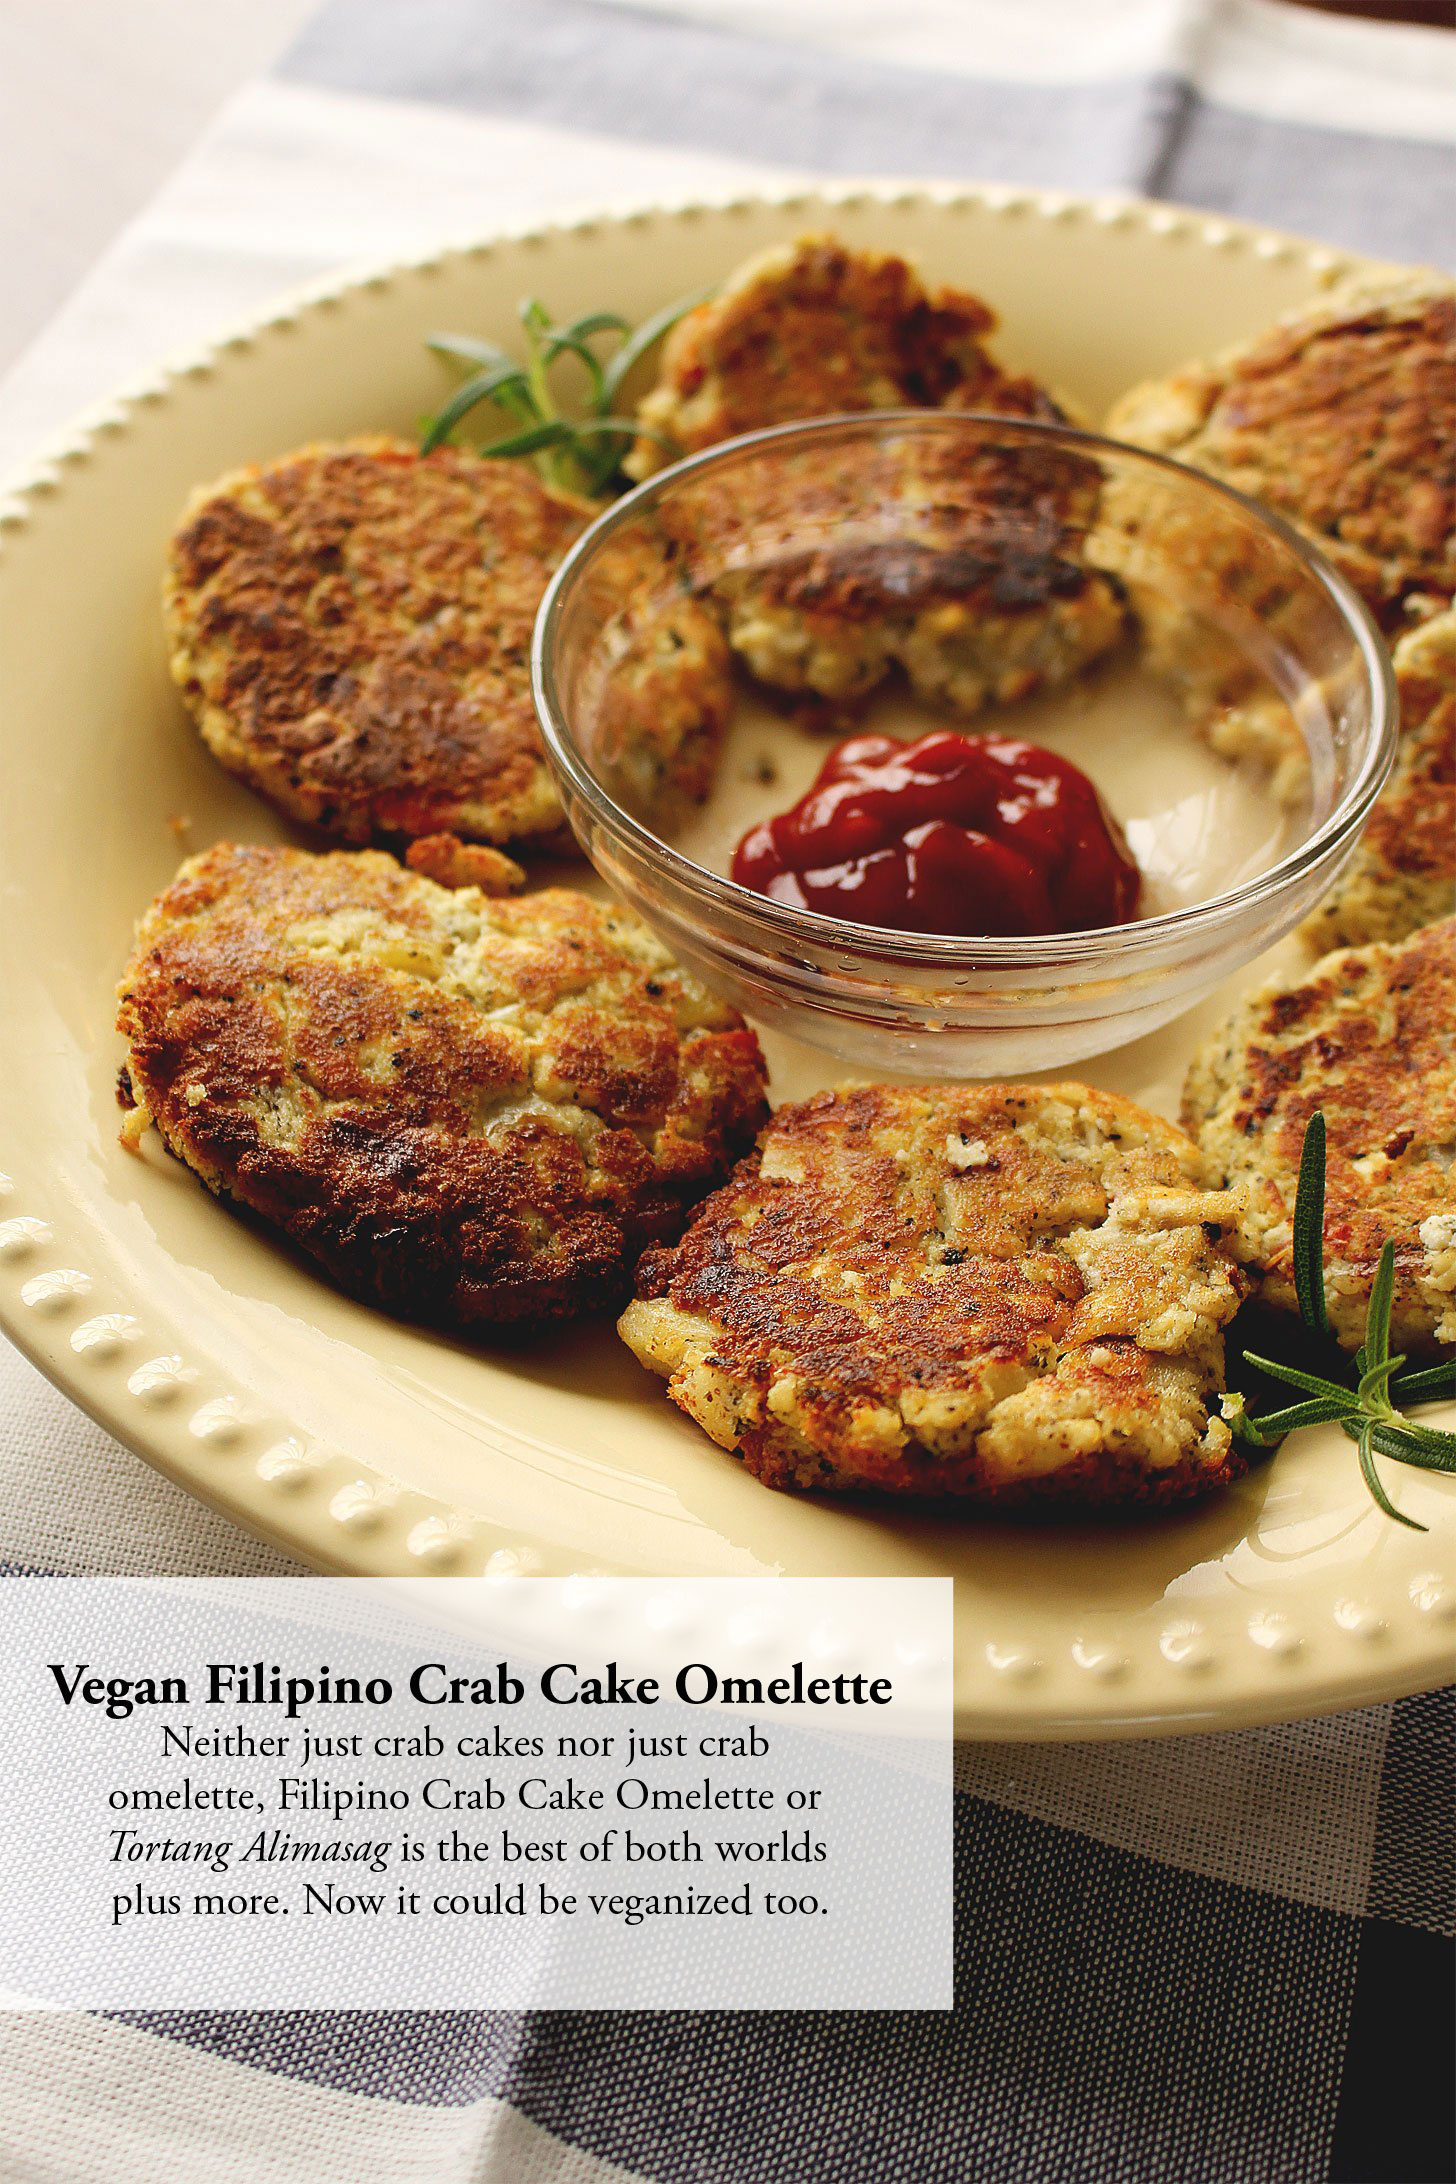 FILIPINO CRAB CAKE OMELETTE